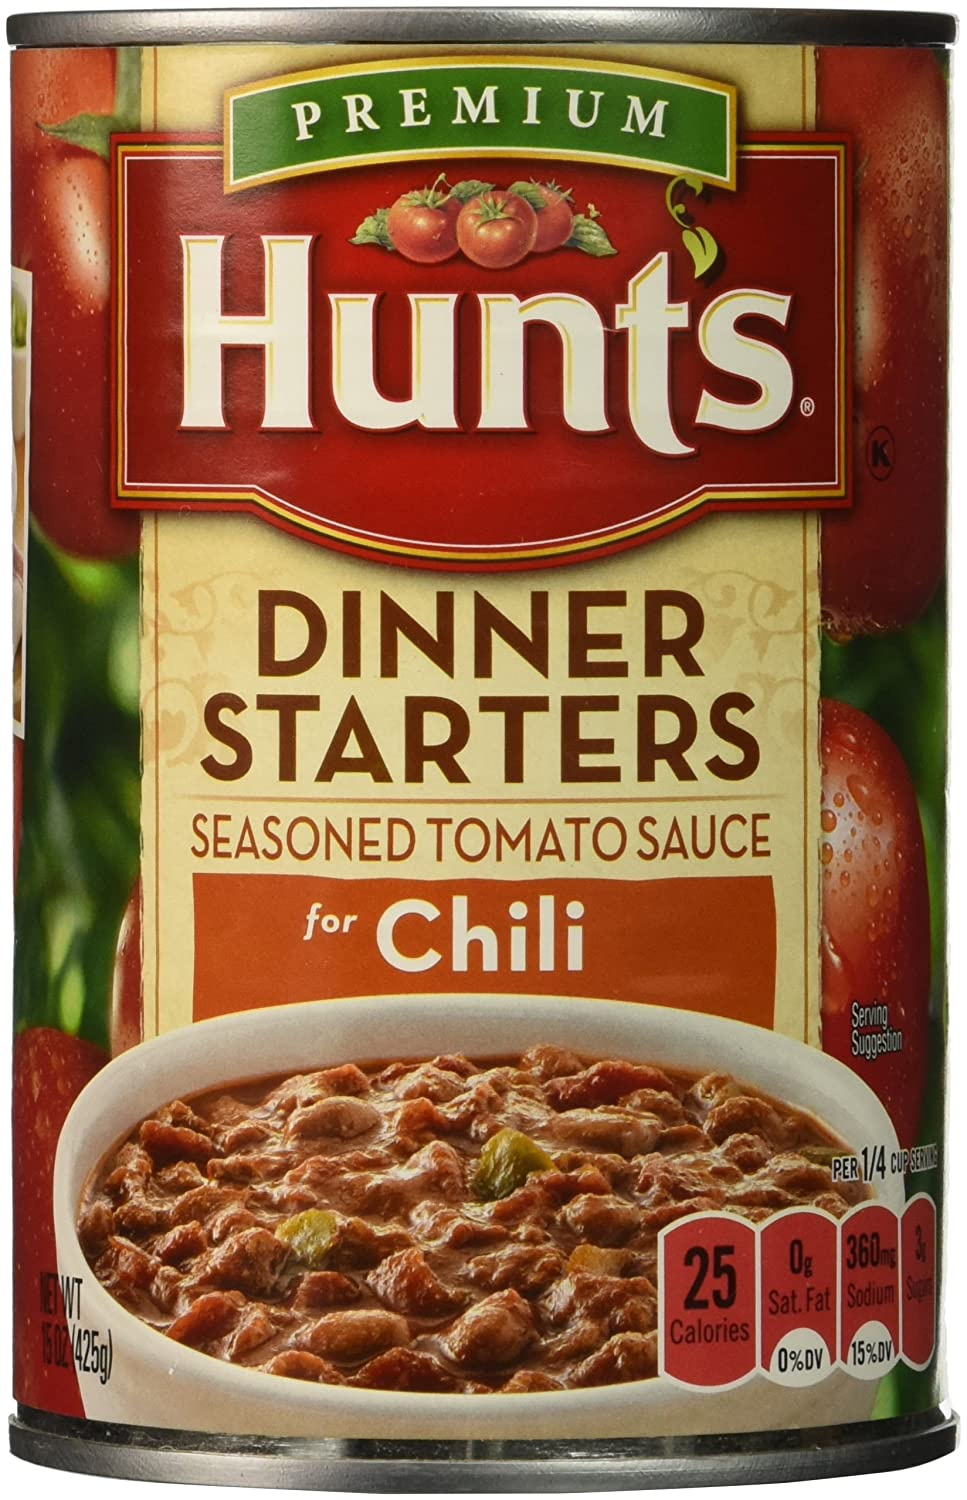 Amazon Com Hunt S Dinner Starters Seasoned Tomato Sauce For Chili 15 Oz Pack Of 6 Grocery Gourmet Food